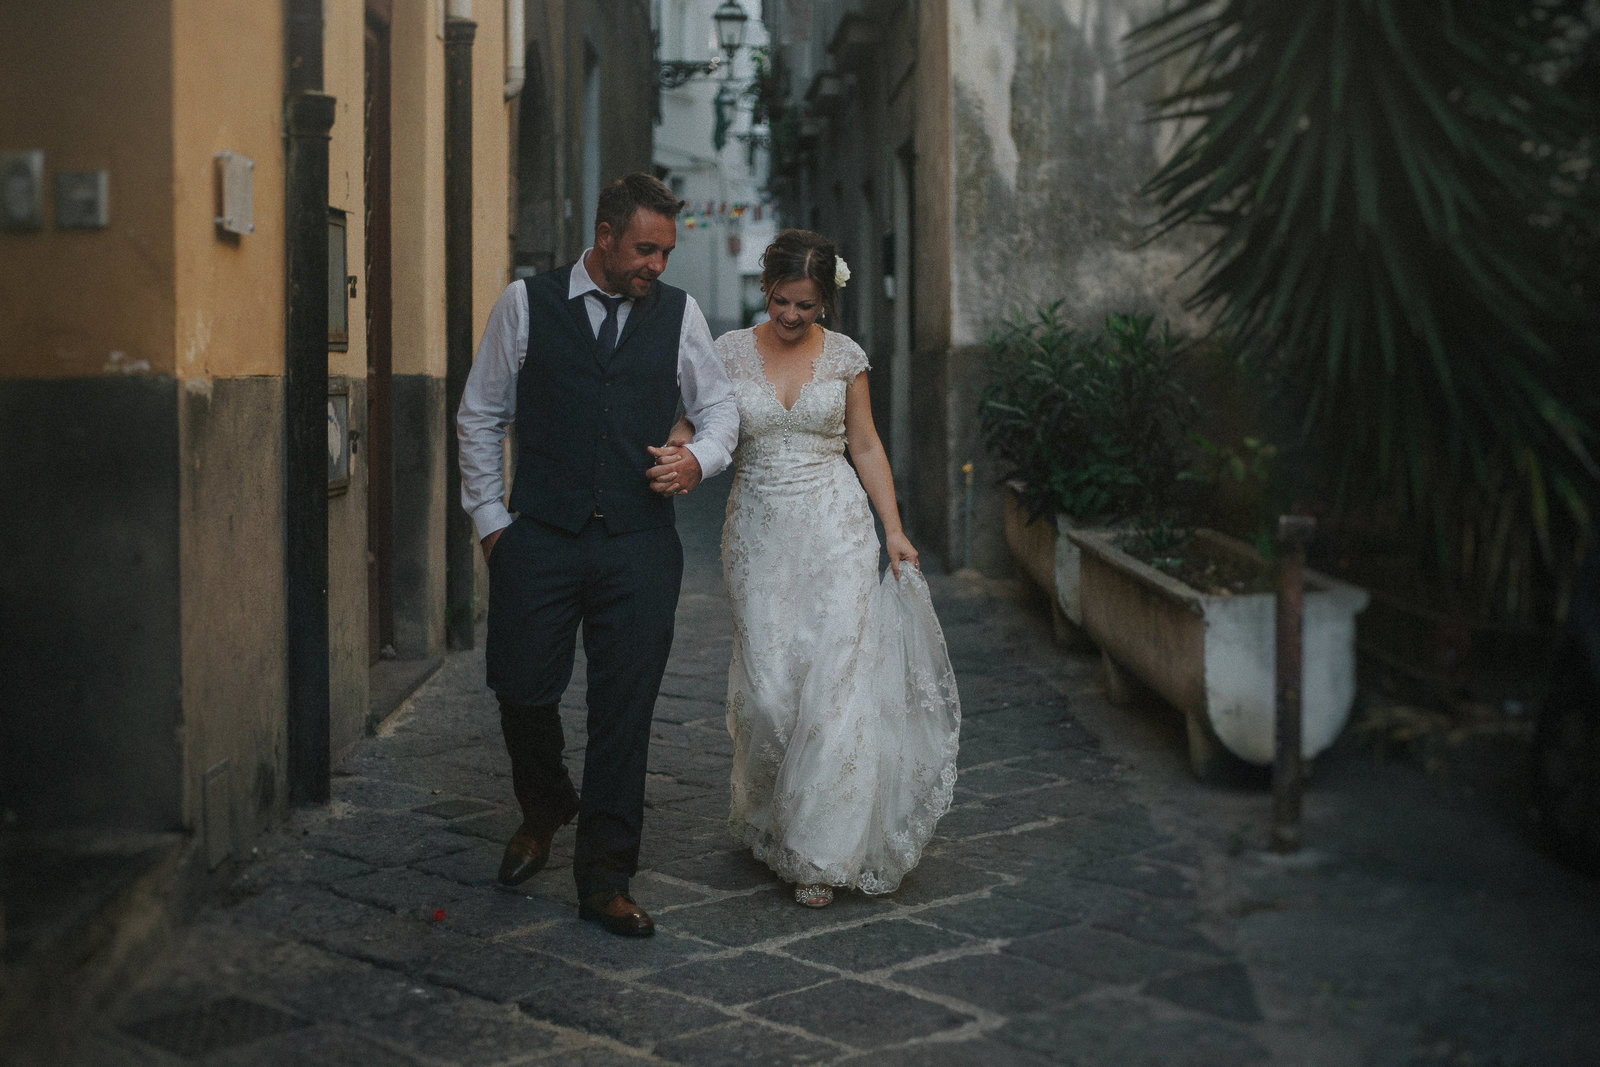 Newly married couple walking hand in hand through the streets of Sorrento, Italy by Sorrento Wedding Photographer Jono Symonds